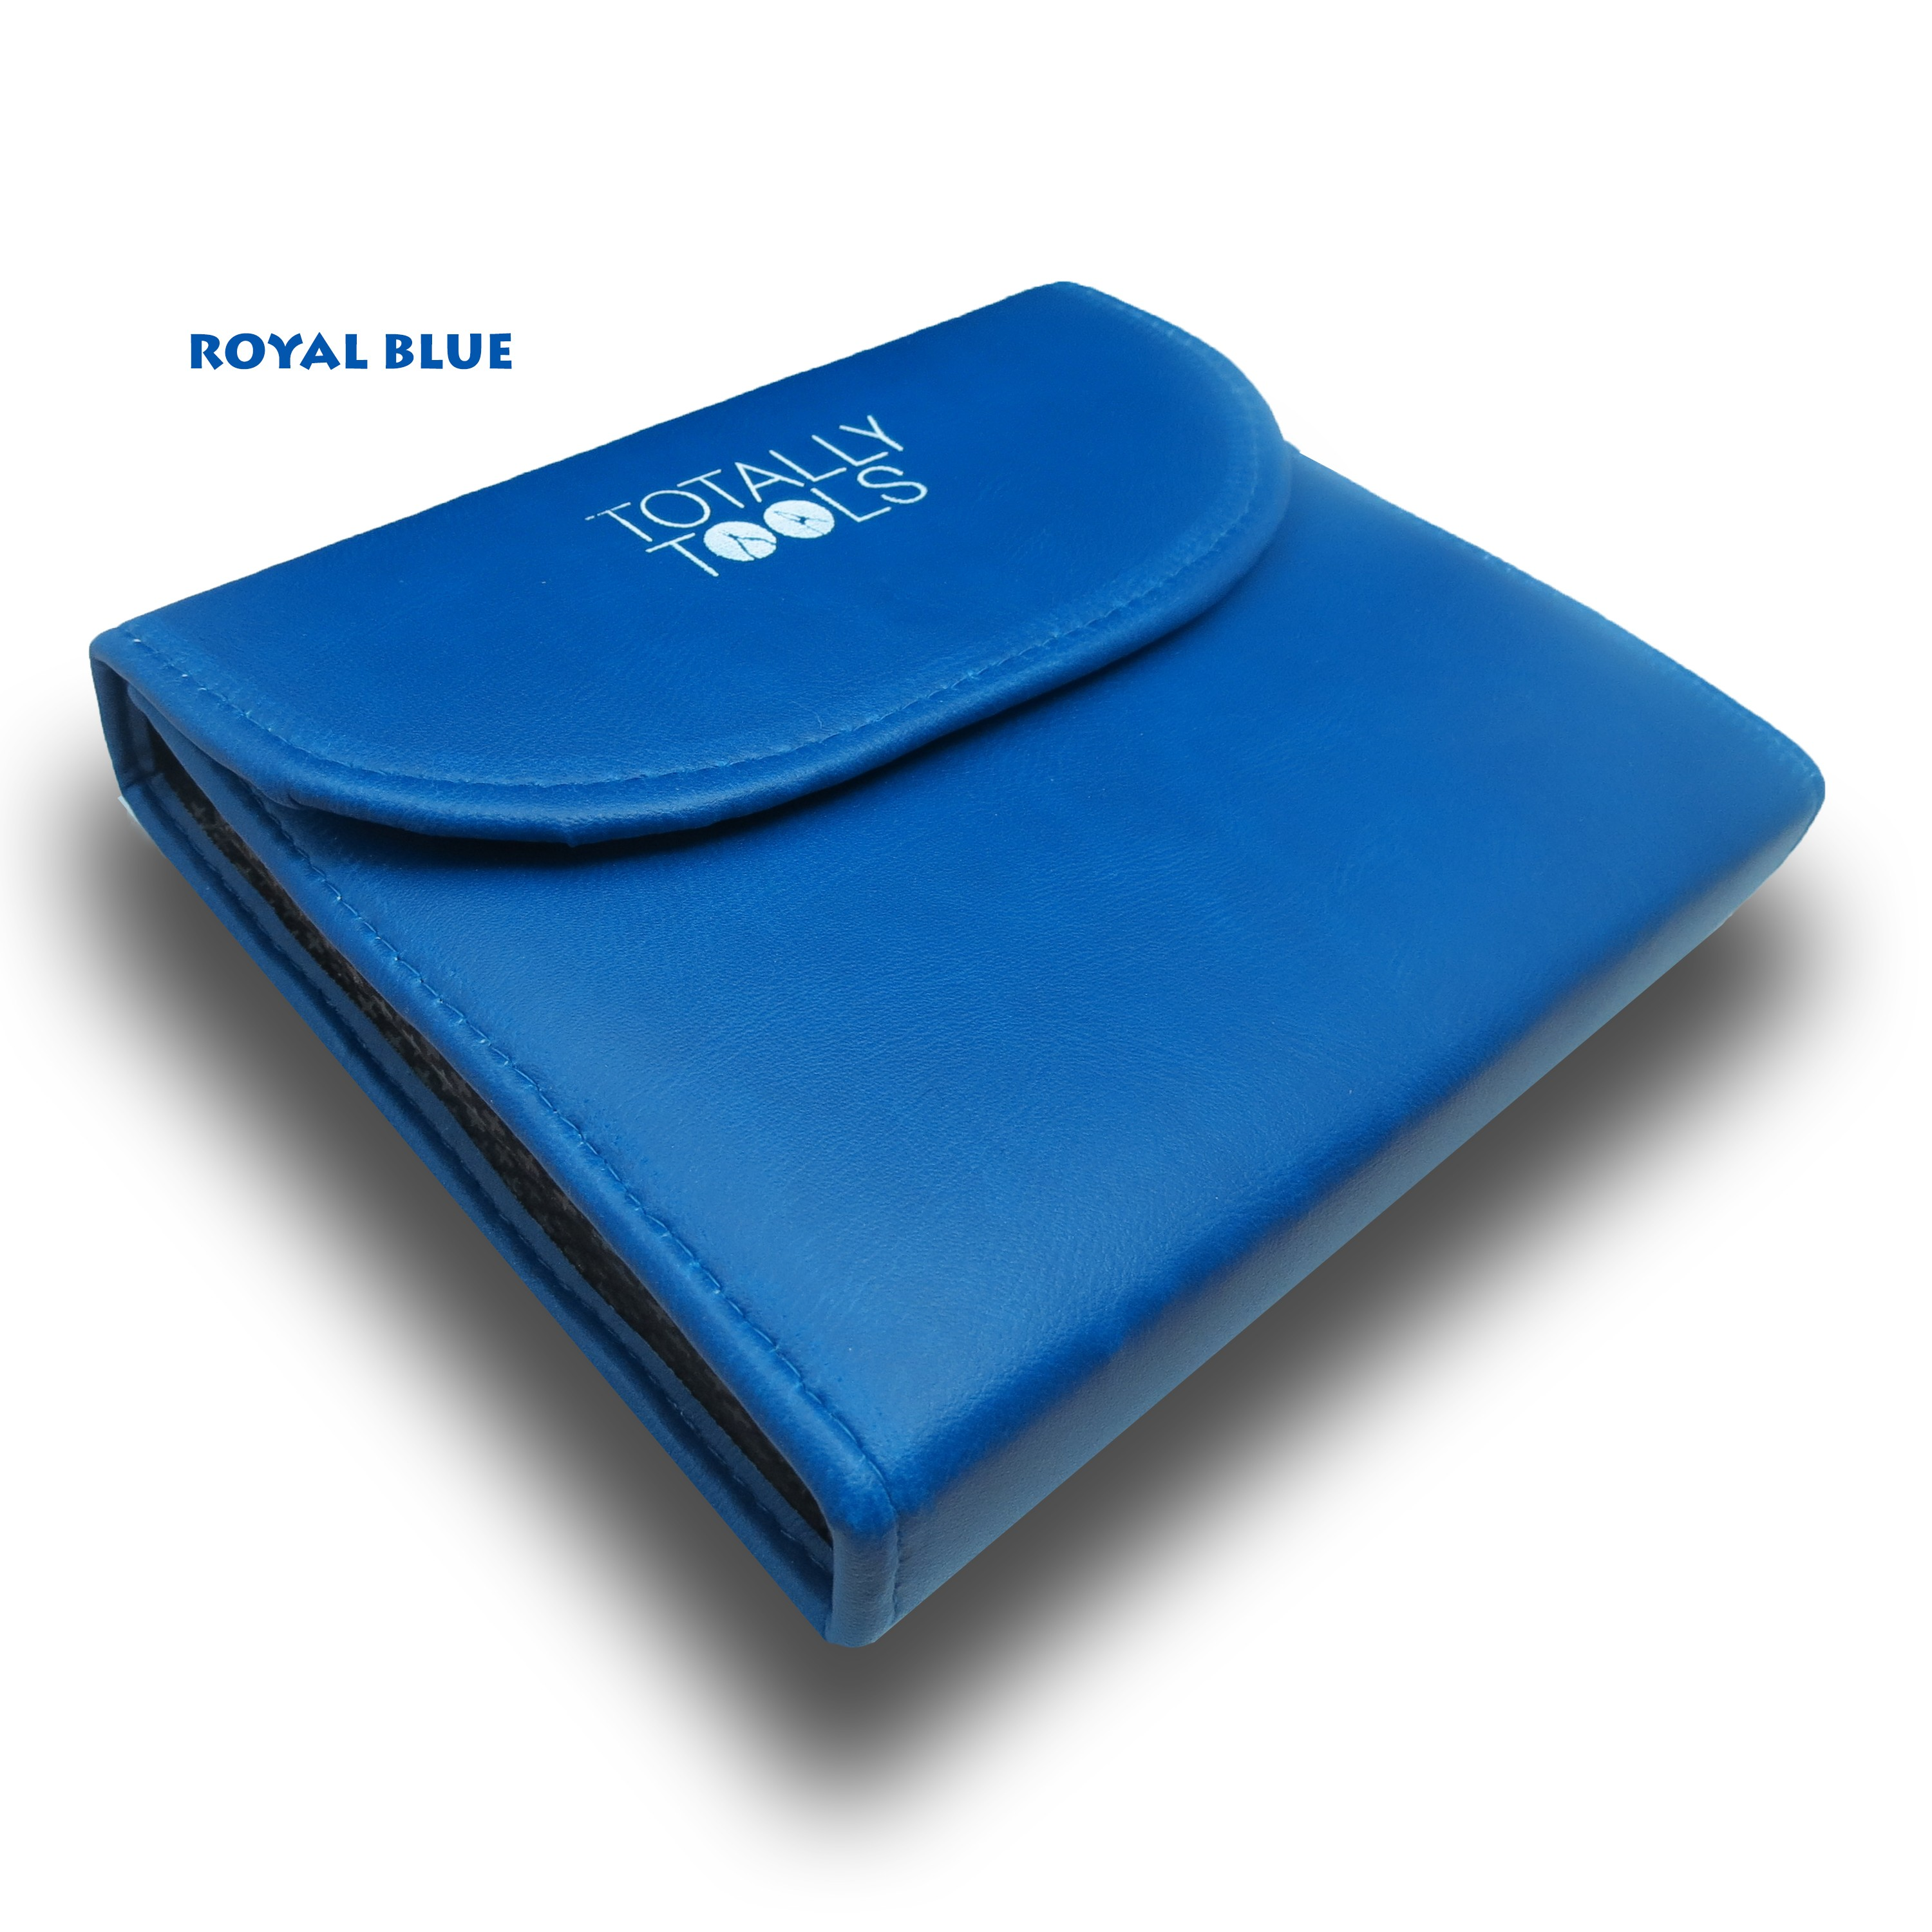 8 Piece Took Kit-Royal Blue